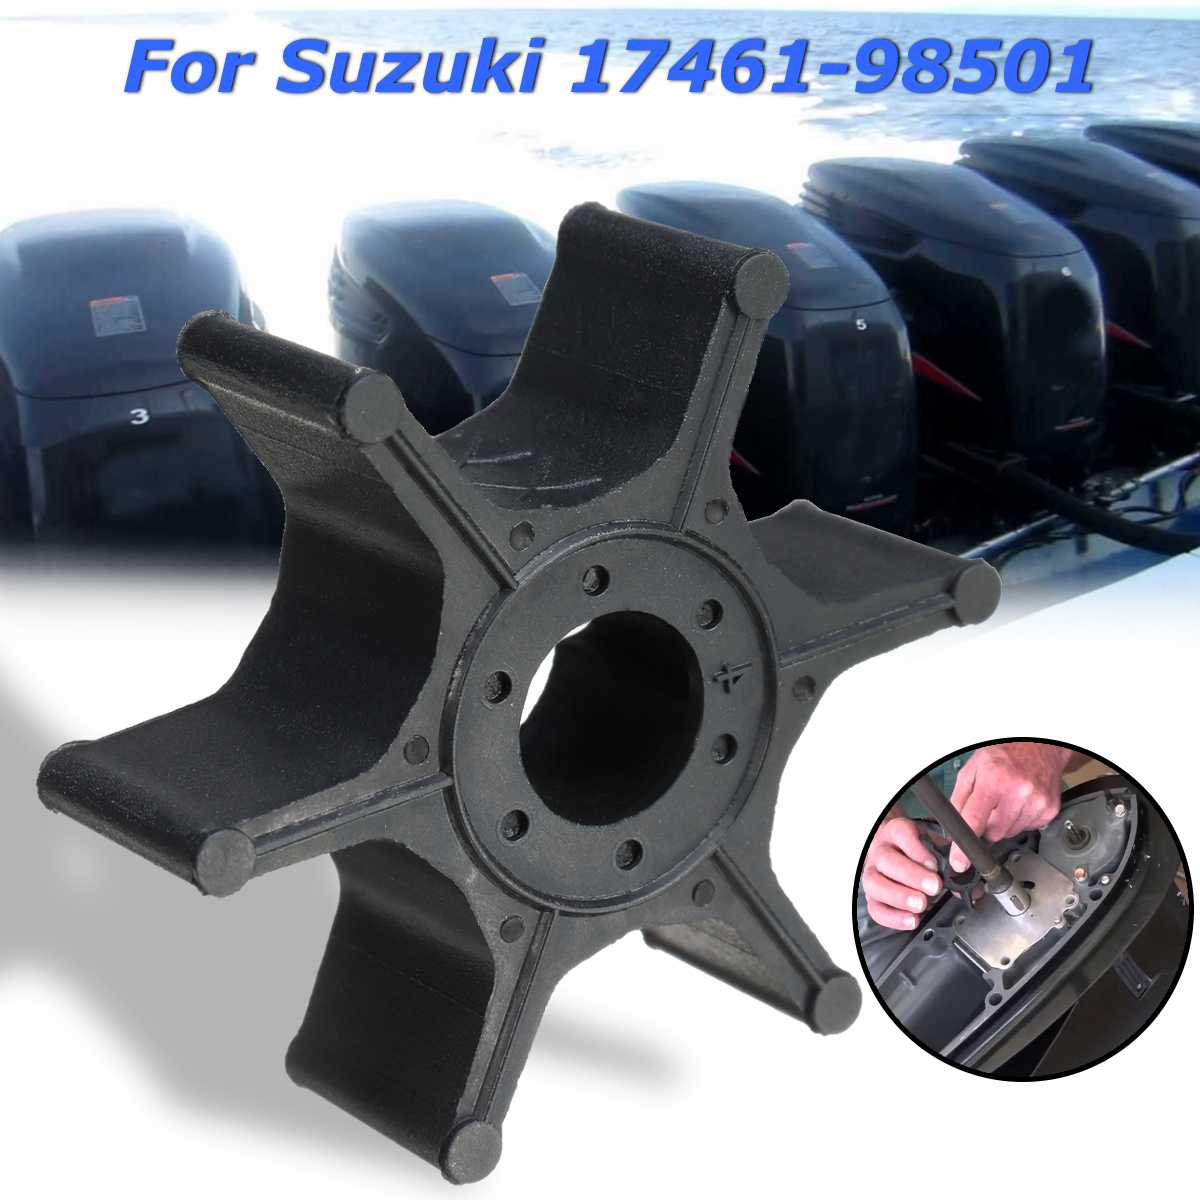 Outboard Engines Replacement 17461-98501 Water Pump Impeller For Suzuki 2-8HP Diameter 41mm Black Rubber 6 Blades Accessories